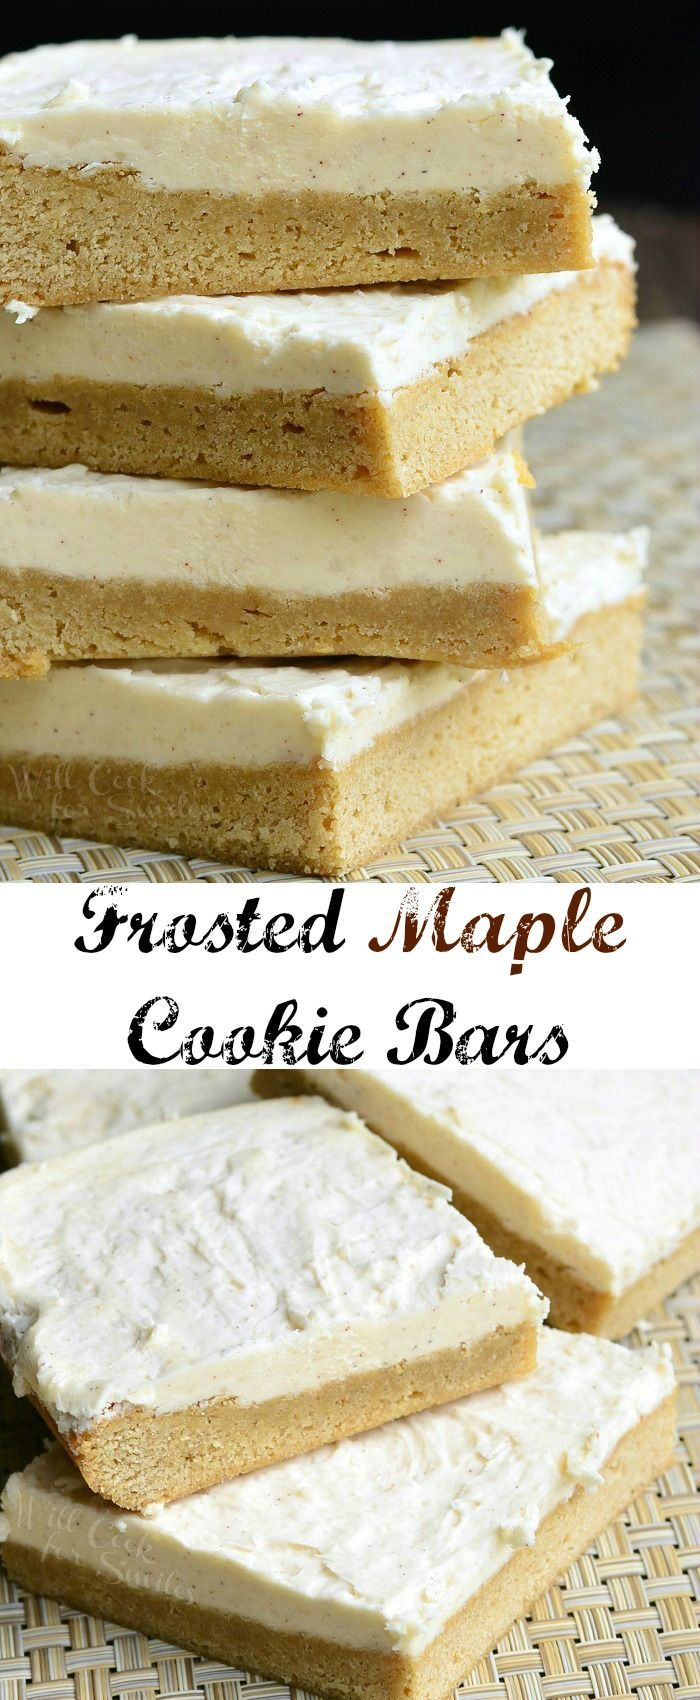 Frosted Maple Cookie Bars | from willcookforsmiles.com #dessert #cookies